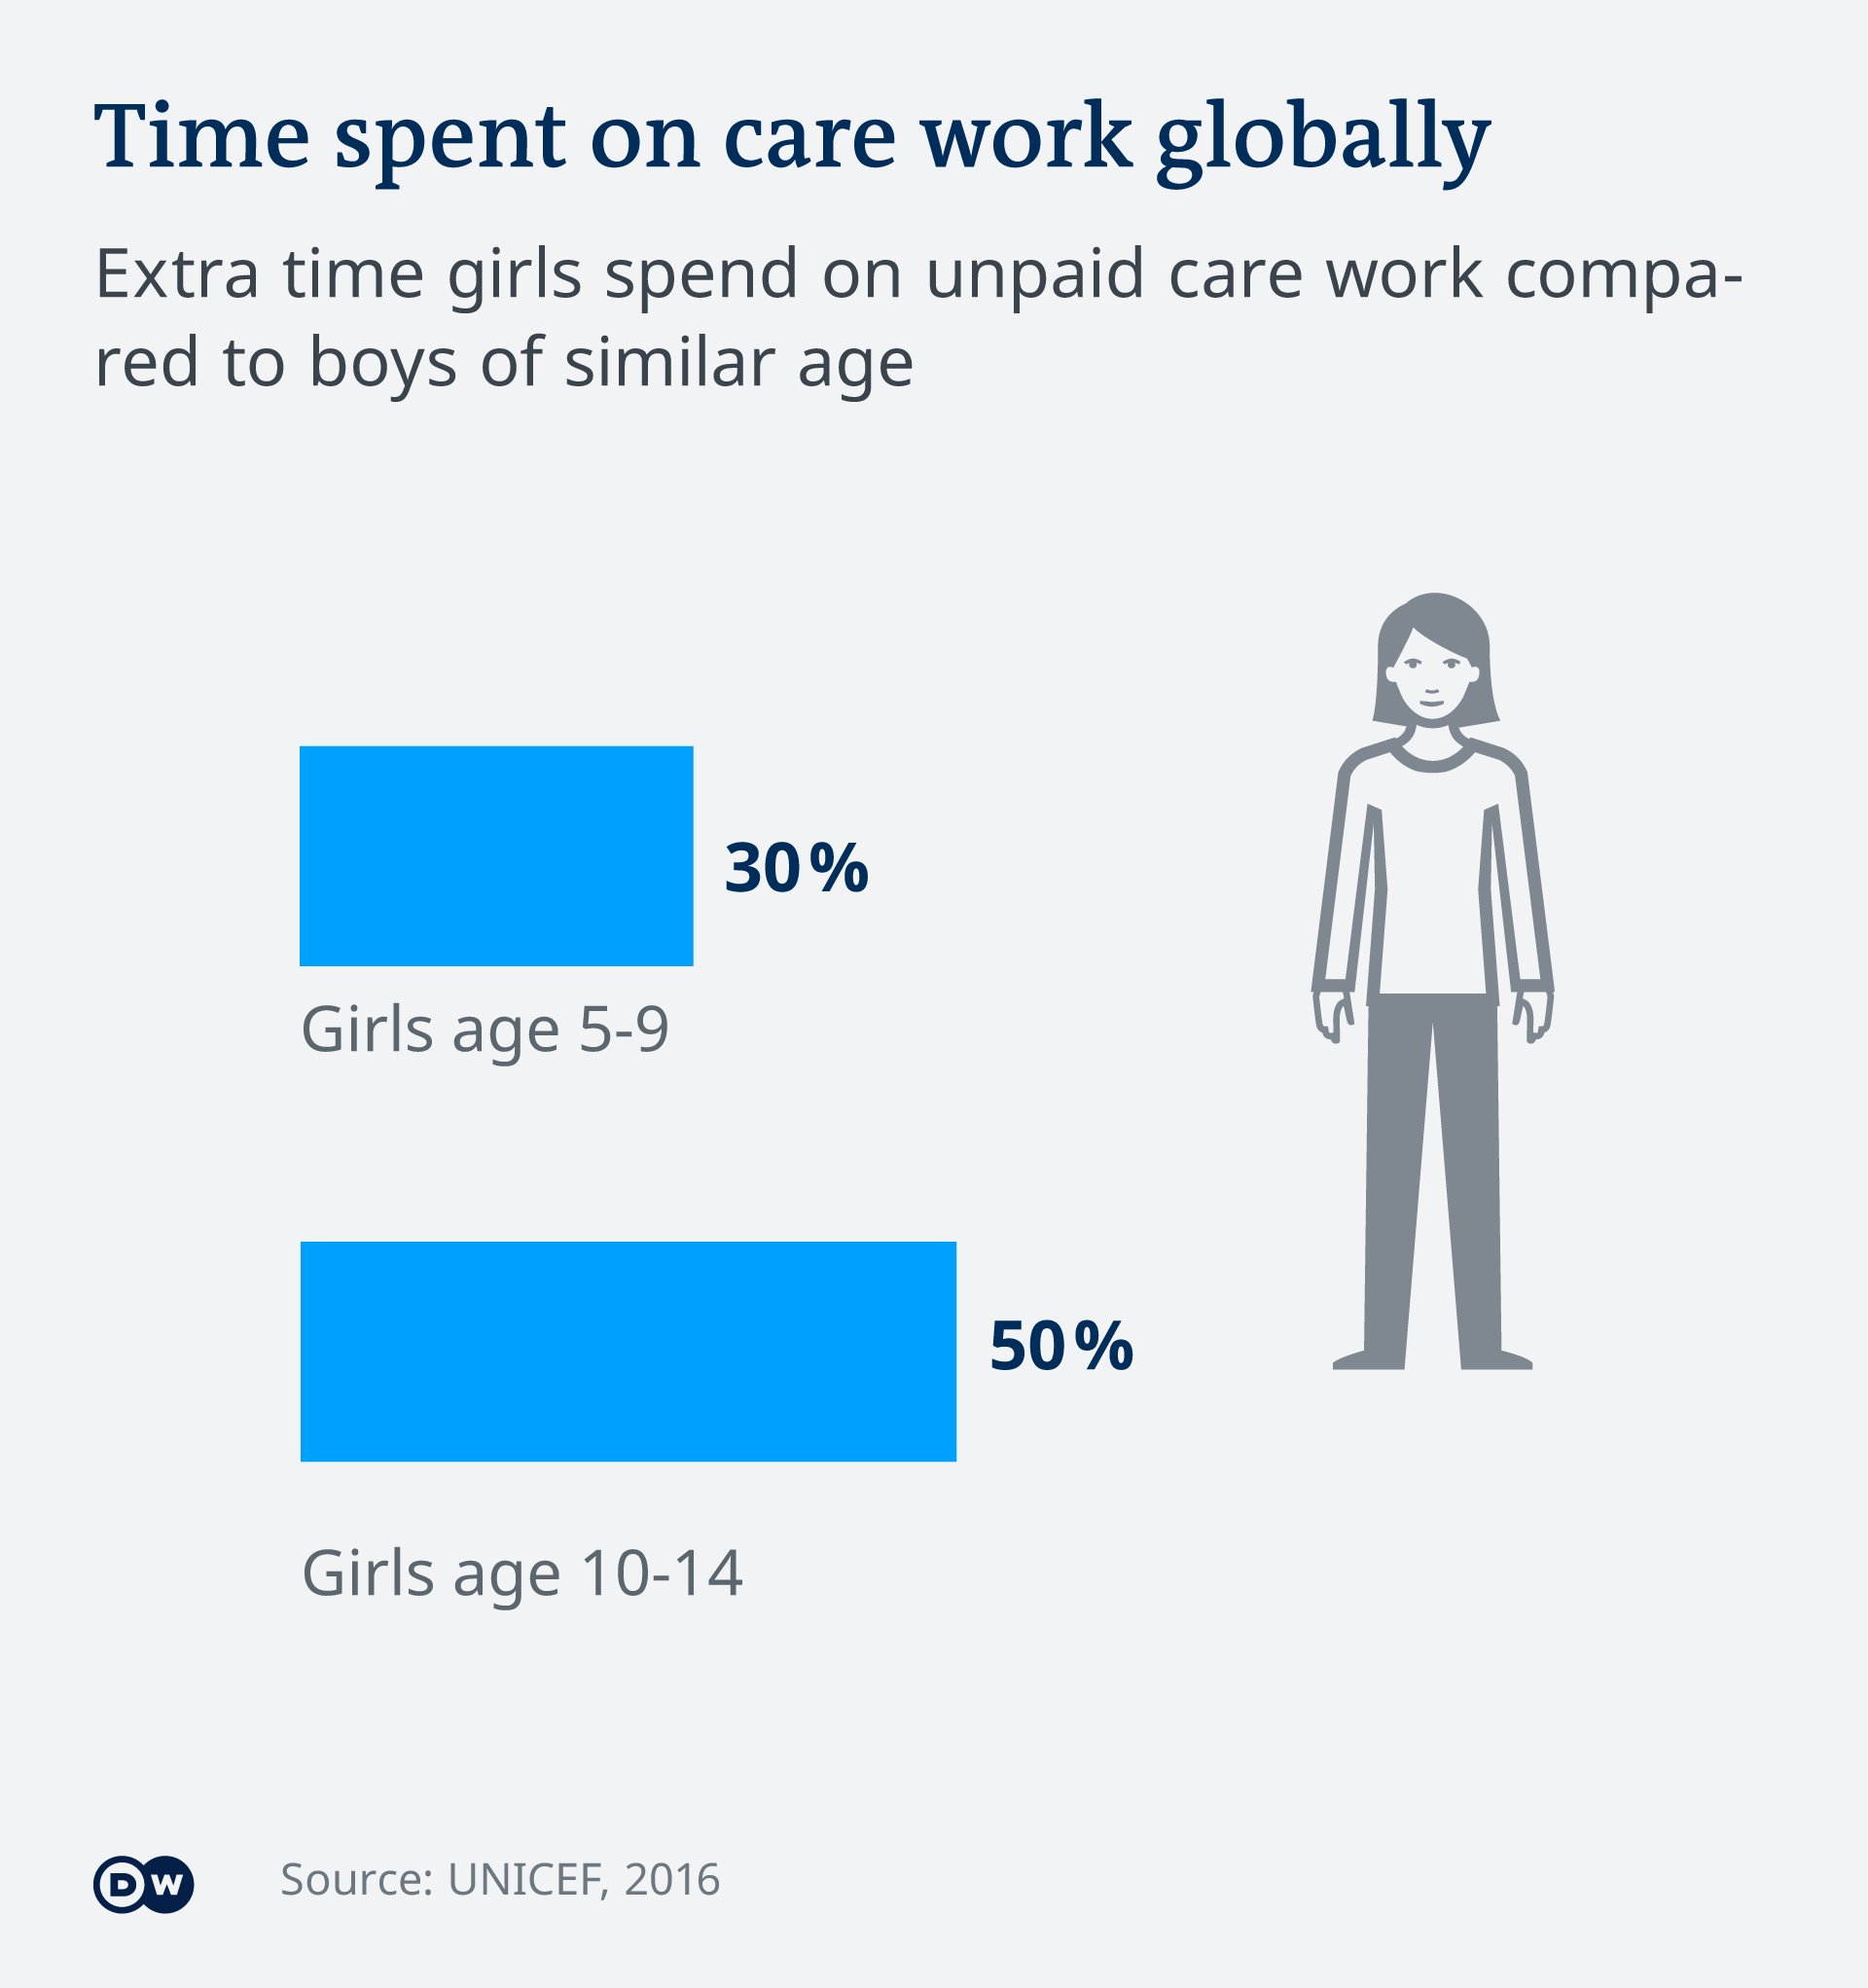 DW Infographic on young girls' unpaid care work globally